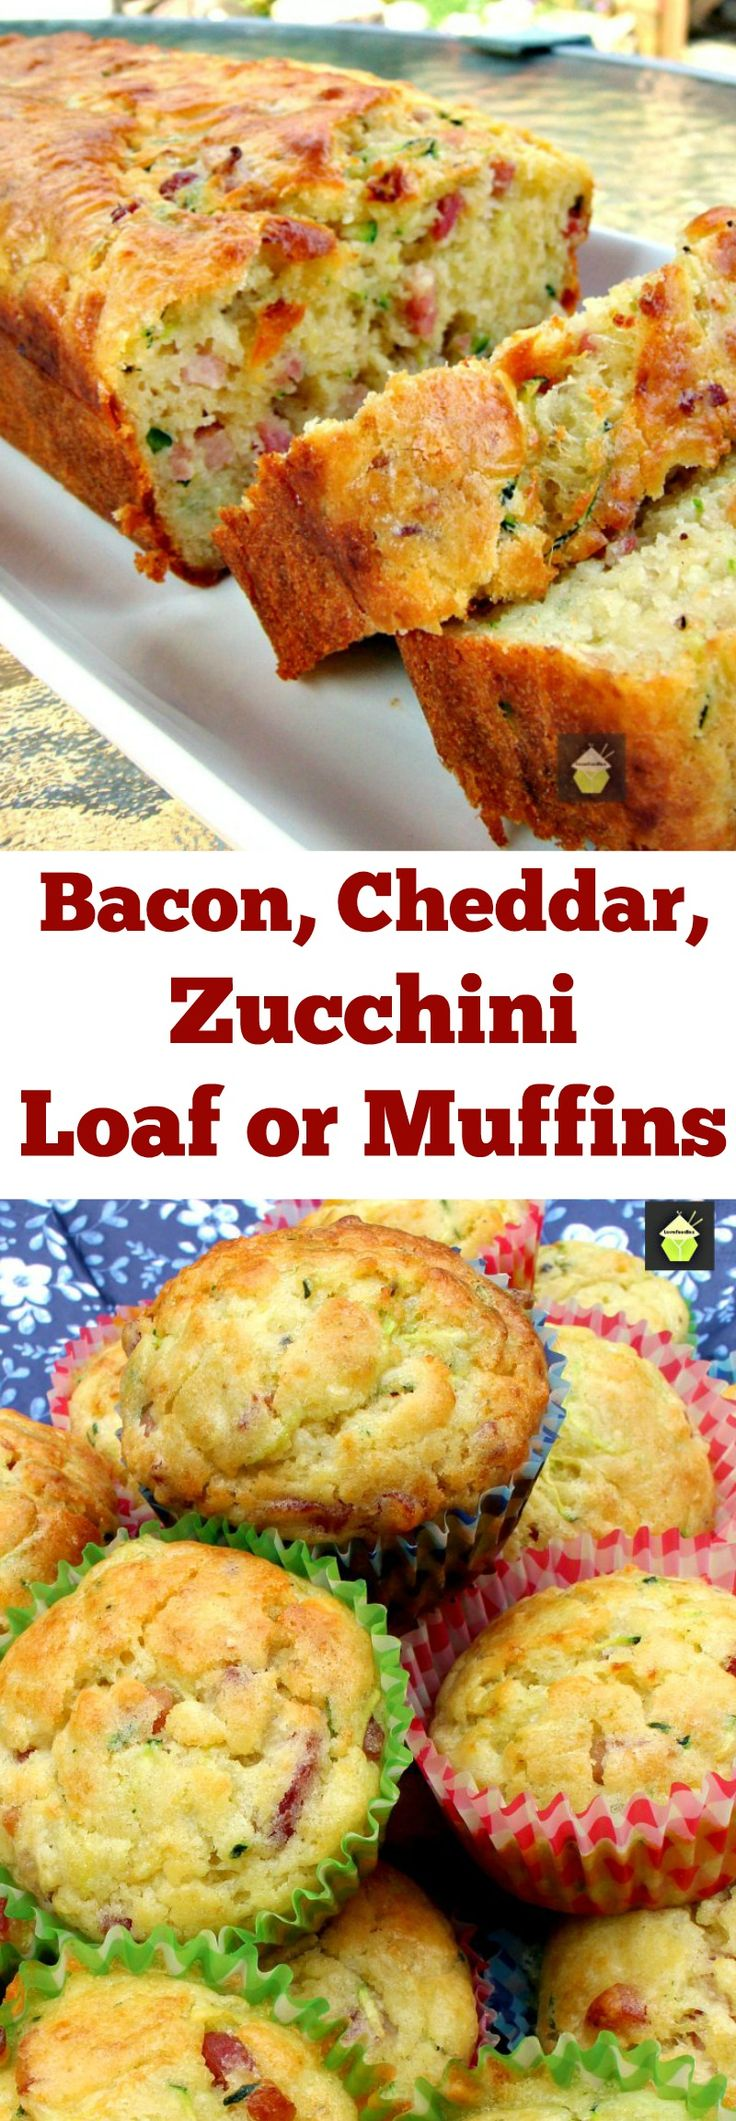 Bacon, Cheddar, Zucchini Loaf Muffins, great for parties, pot lucks and also freezer friendly too! | Lovefoodies.com via @lovefoodies